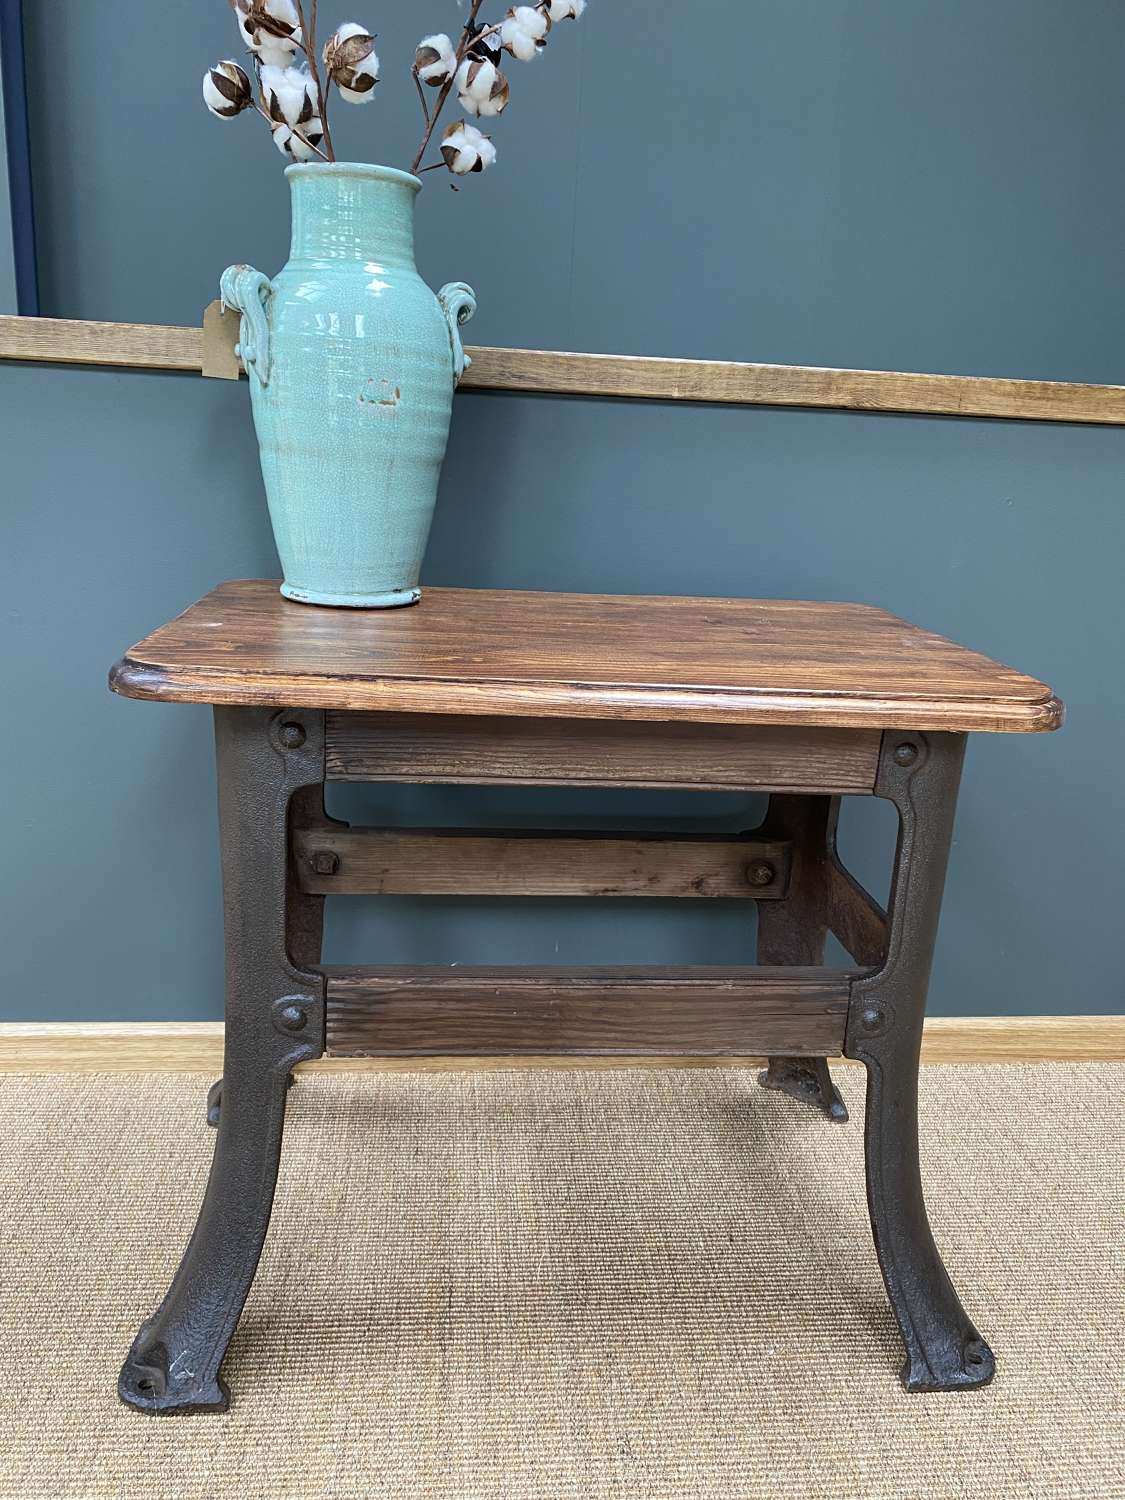 Cast Iron Industrial Table with Wooden Top